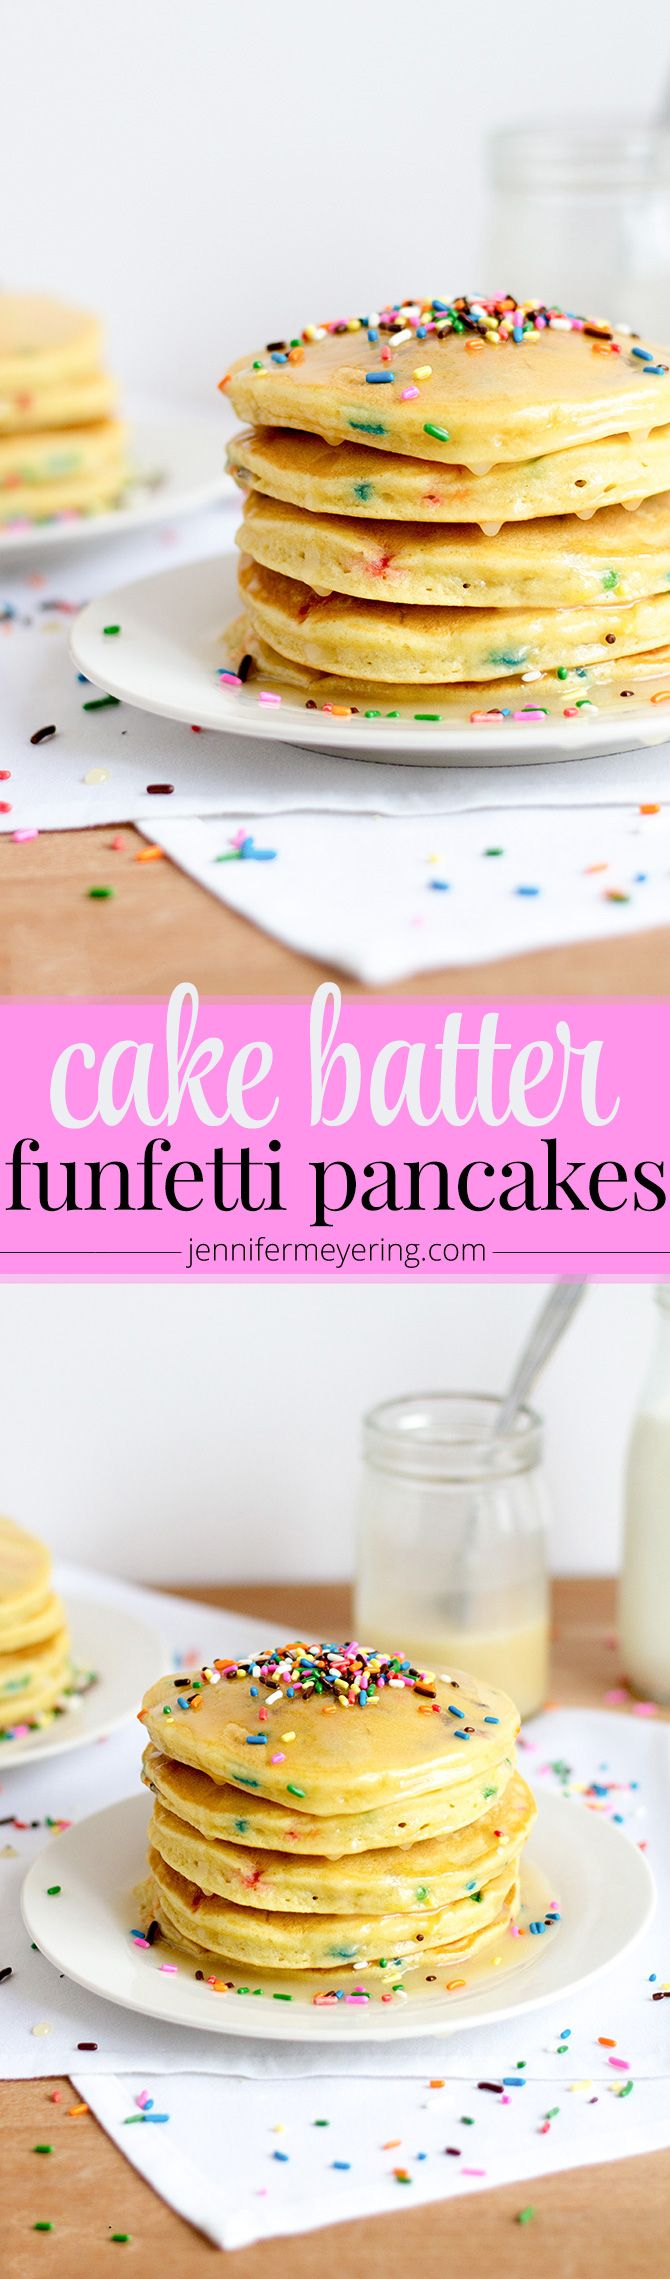 These fun pancakes start with a box of cake mix for sweet, fluffy pancakes anyone will . Total Time: 30 minutes Skip to Recipe |  Recipe It has been raining here forthe past two weeks straight. I feel like